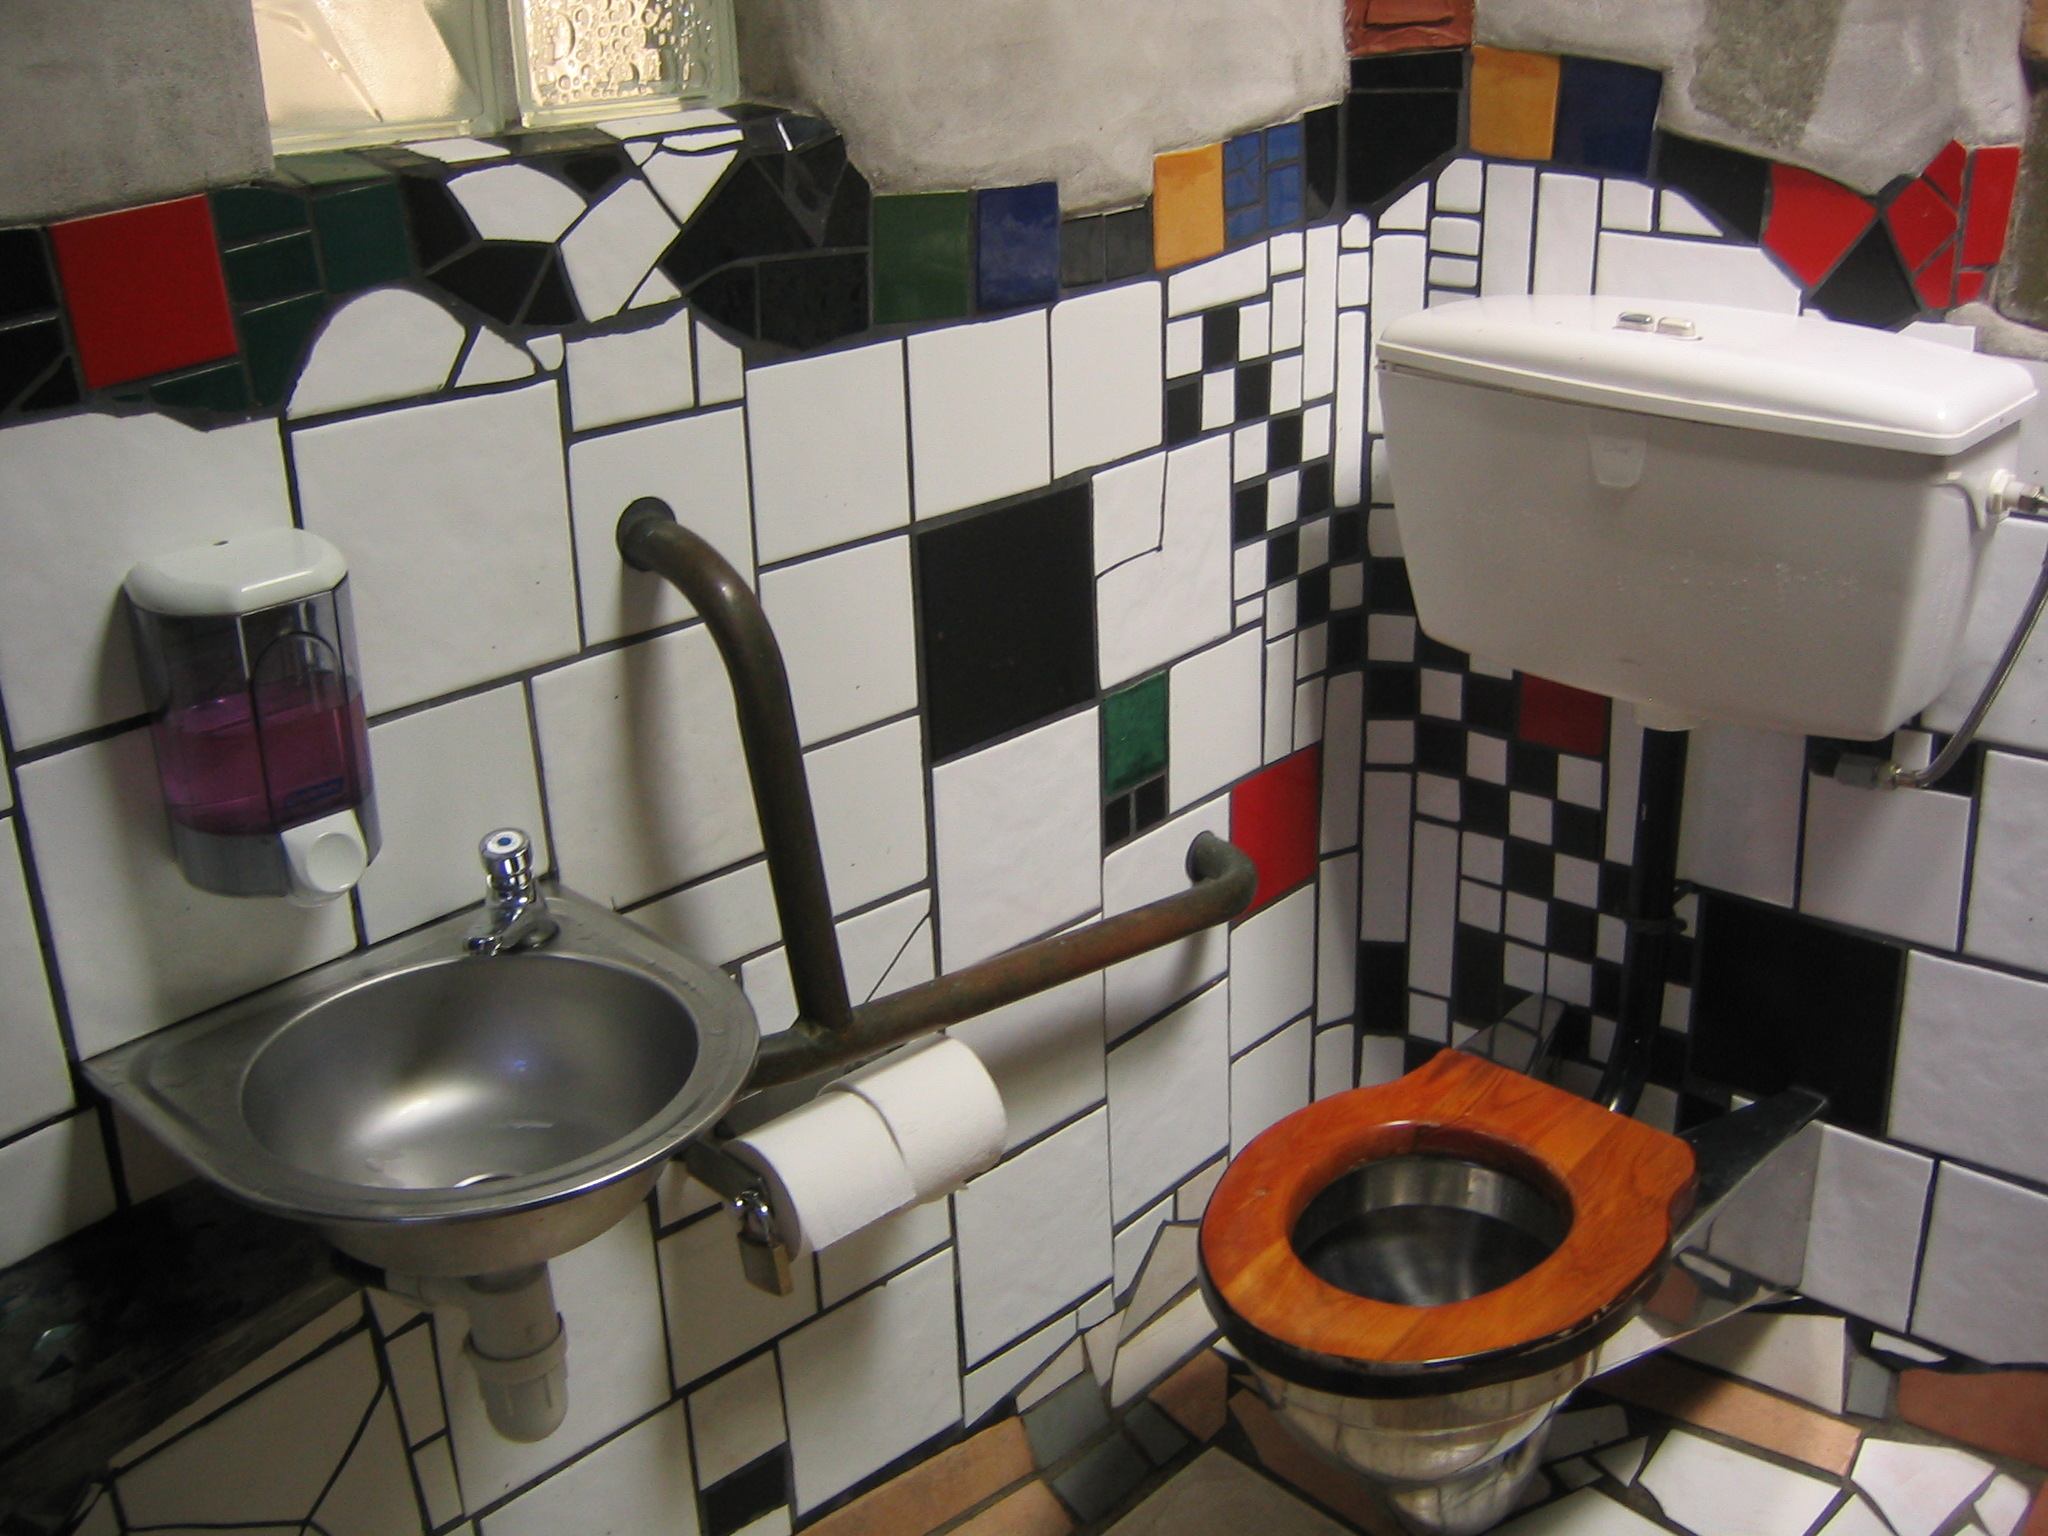 file hundertwasser toilet in wikimedia commons. Black Bedroom Furniture Sets. Home Design Ideas